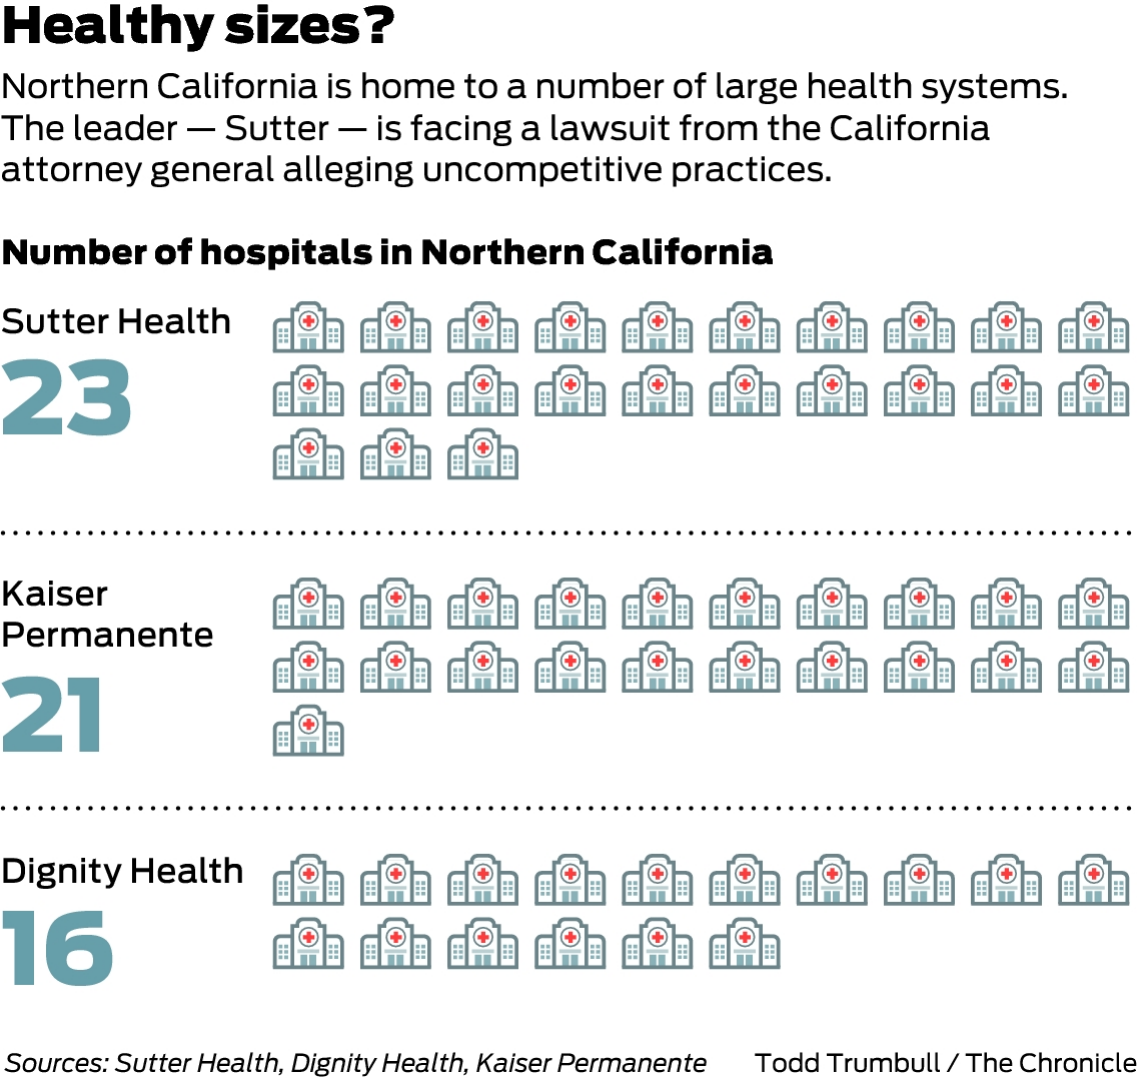 Suit against Sutter spawns fight with Bay Area hospitals